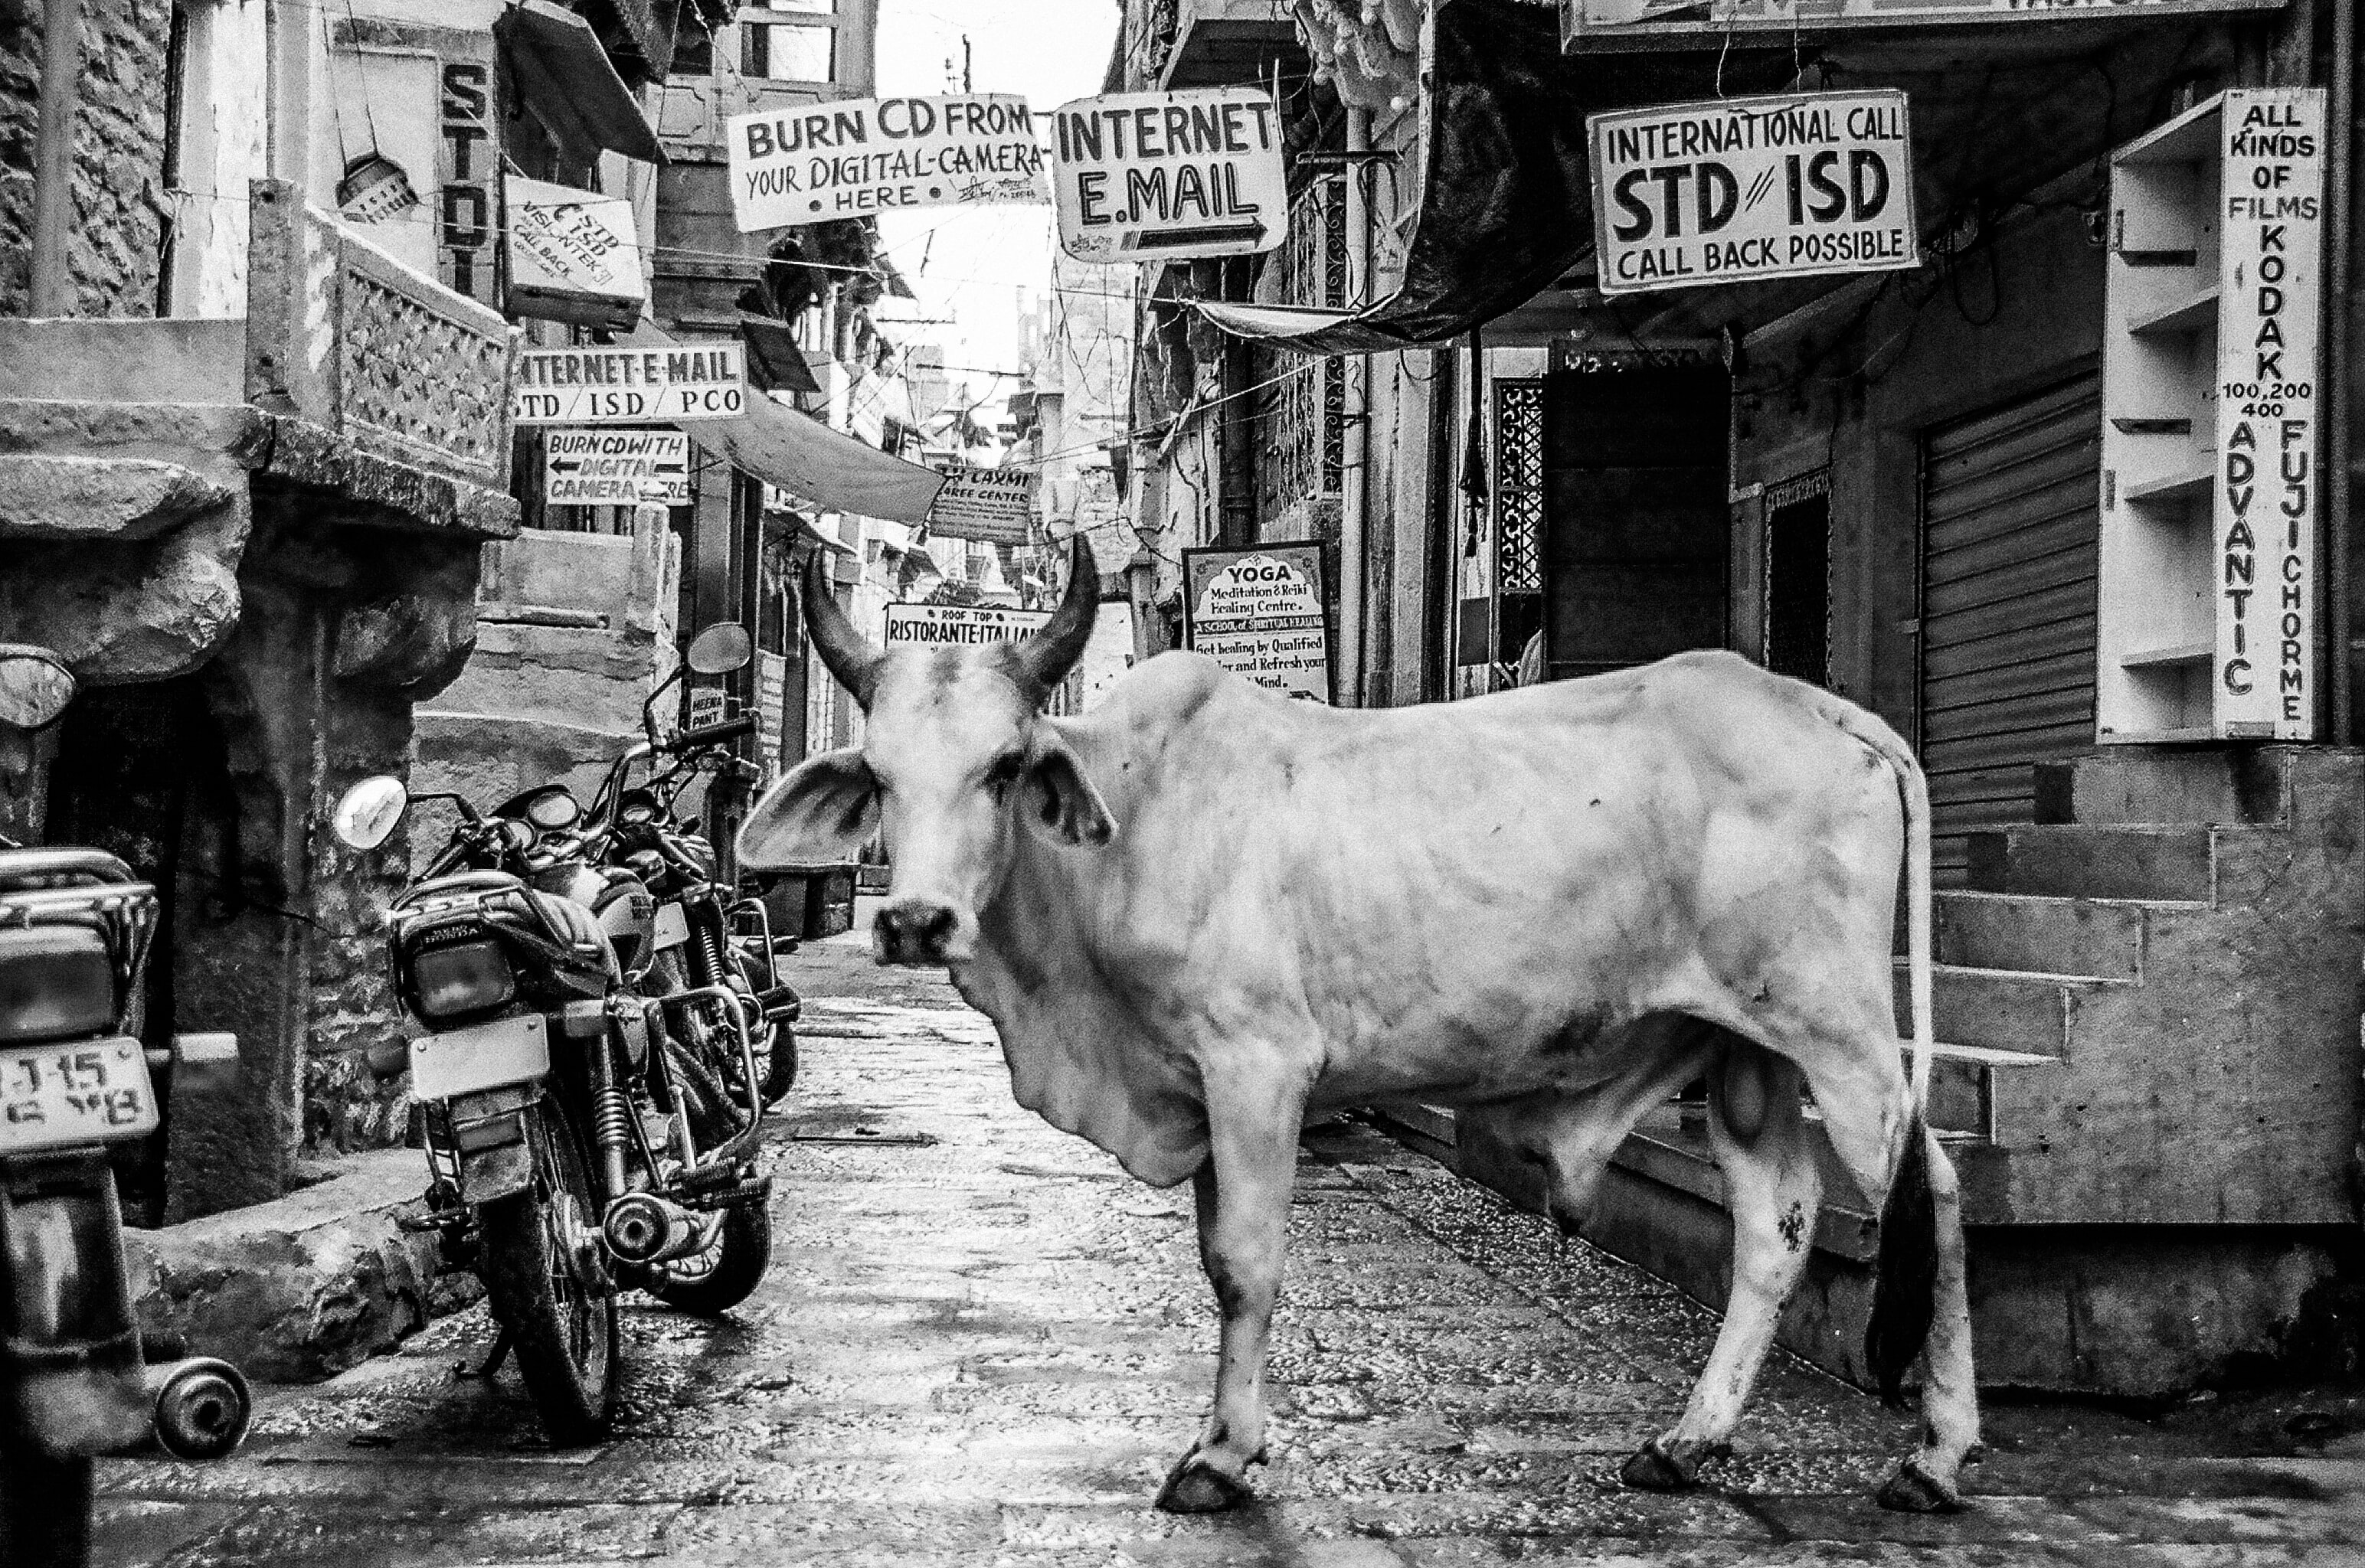 Black and white shot of bull in alley with signs and motorbike